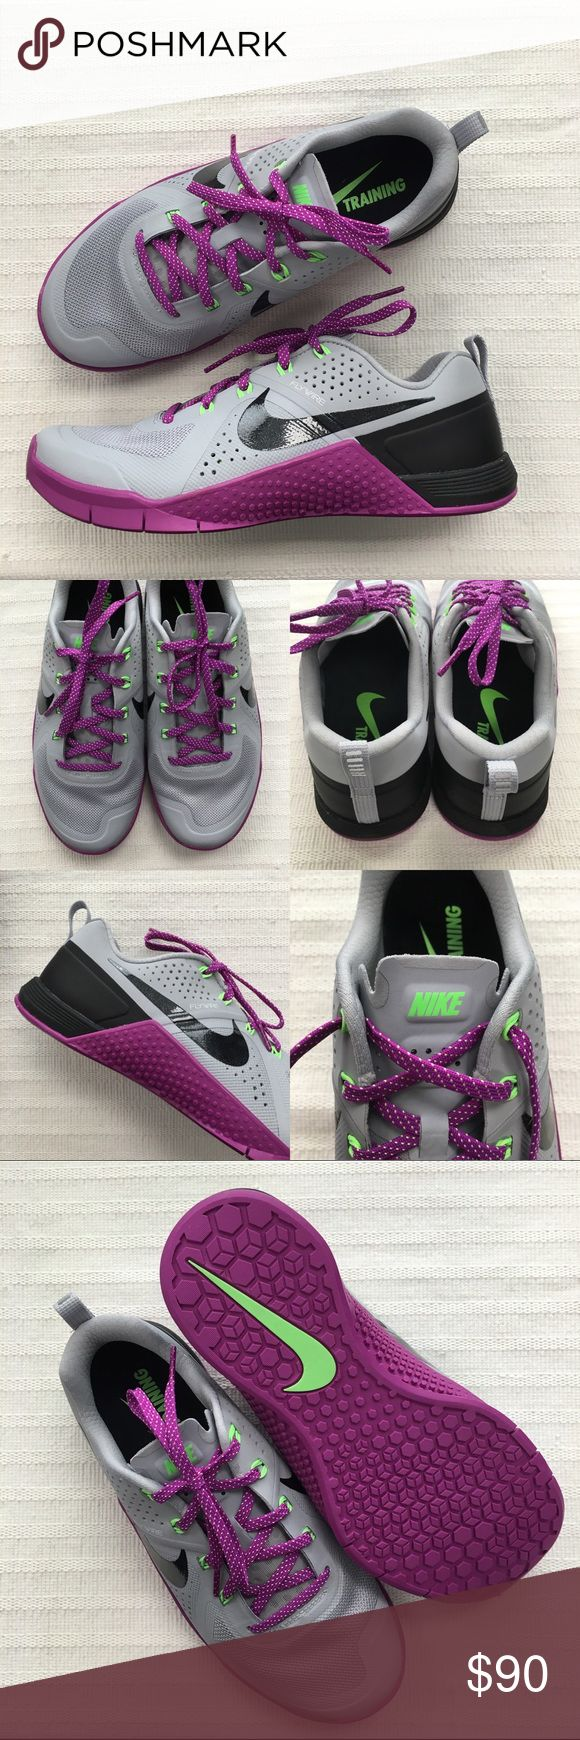 Women's Nike Metcon 1 Crossfit Training Shoes Women's Nike Metcon 1 Crossfit Training Shoes Style/Color: 813101-005  • Women's size 9  • NEW in box (no lid) • No trades •100% authentic Nike Shoes Sneakers